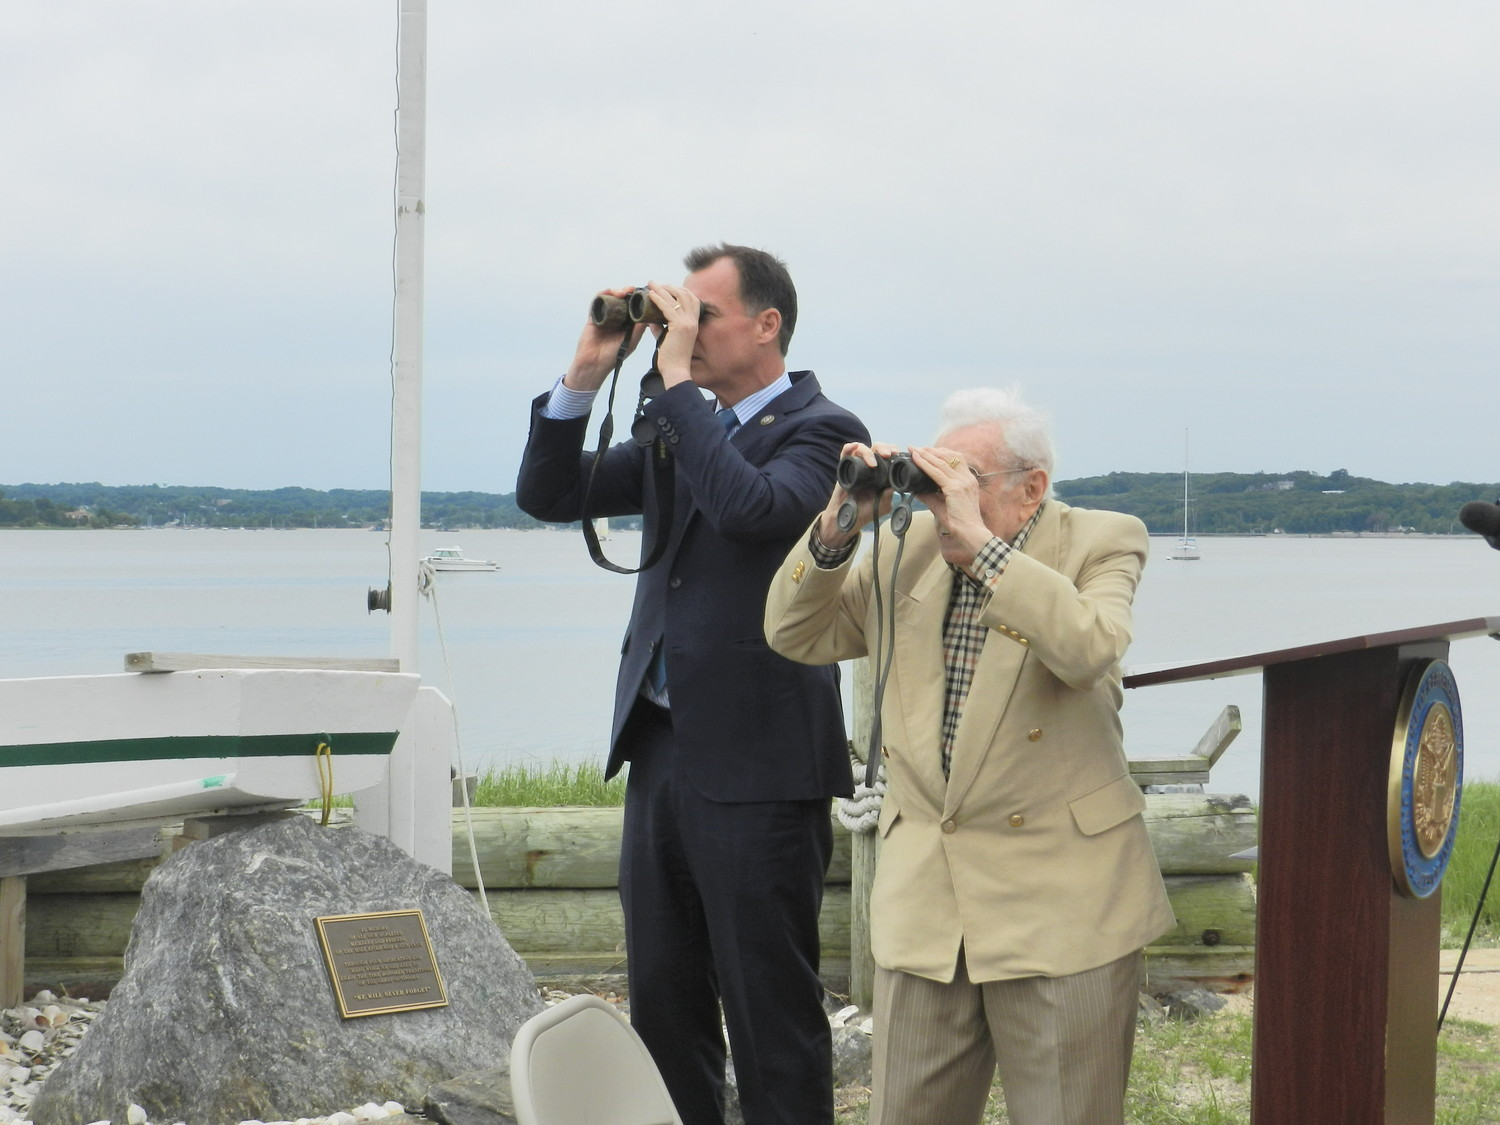 With the help of binoculars, Suozzi and Wolff kept their eyes peeled for the ospreys.